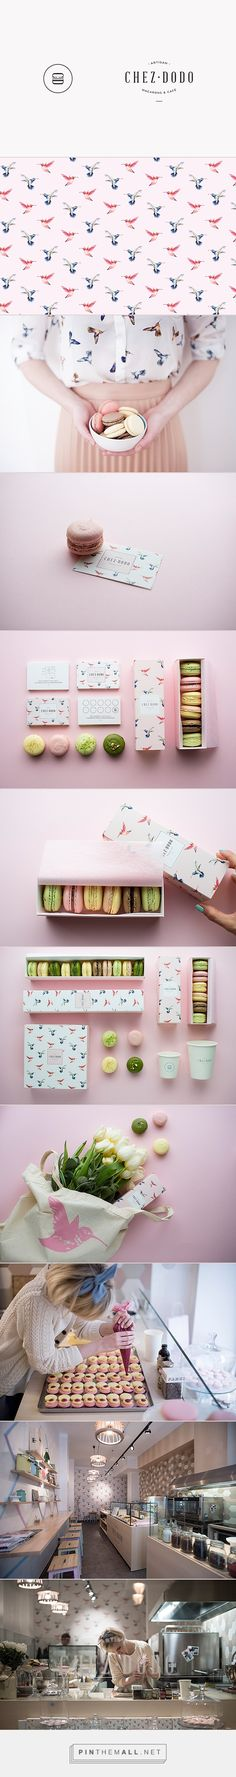 Branding for CHEZ DODO: Absolutely adore this charming brand for a macaron manufacturer. Love the logo mark and the pattern. Great work.